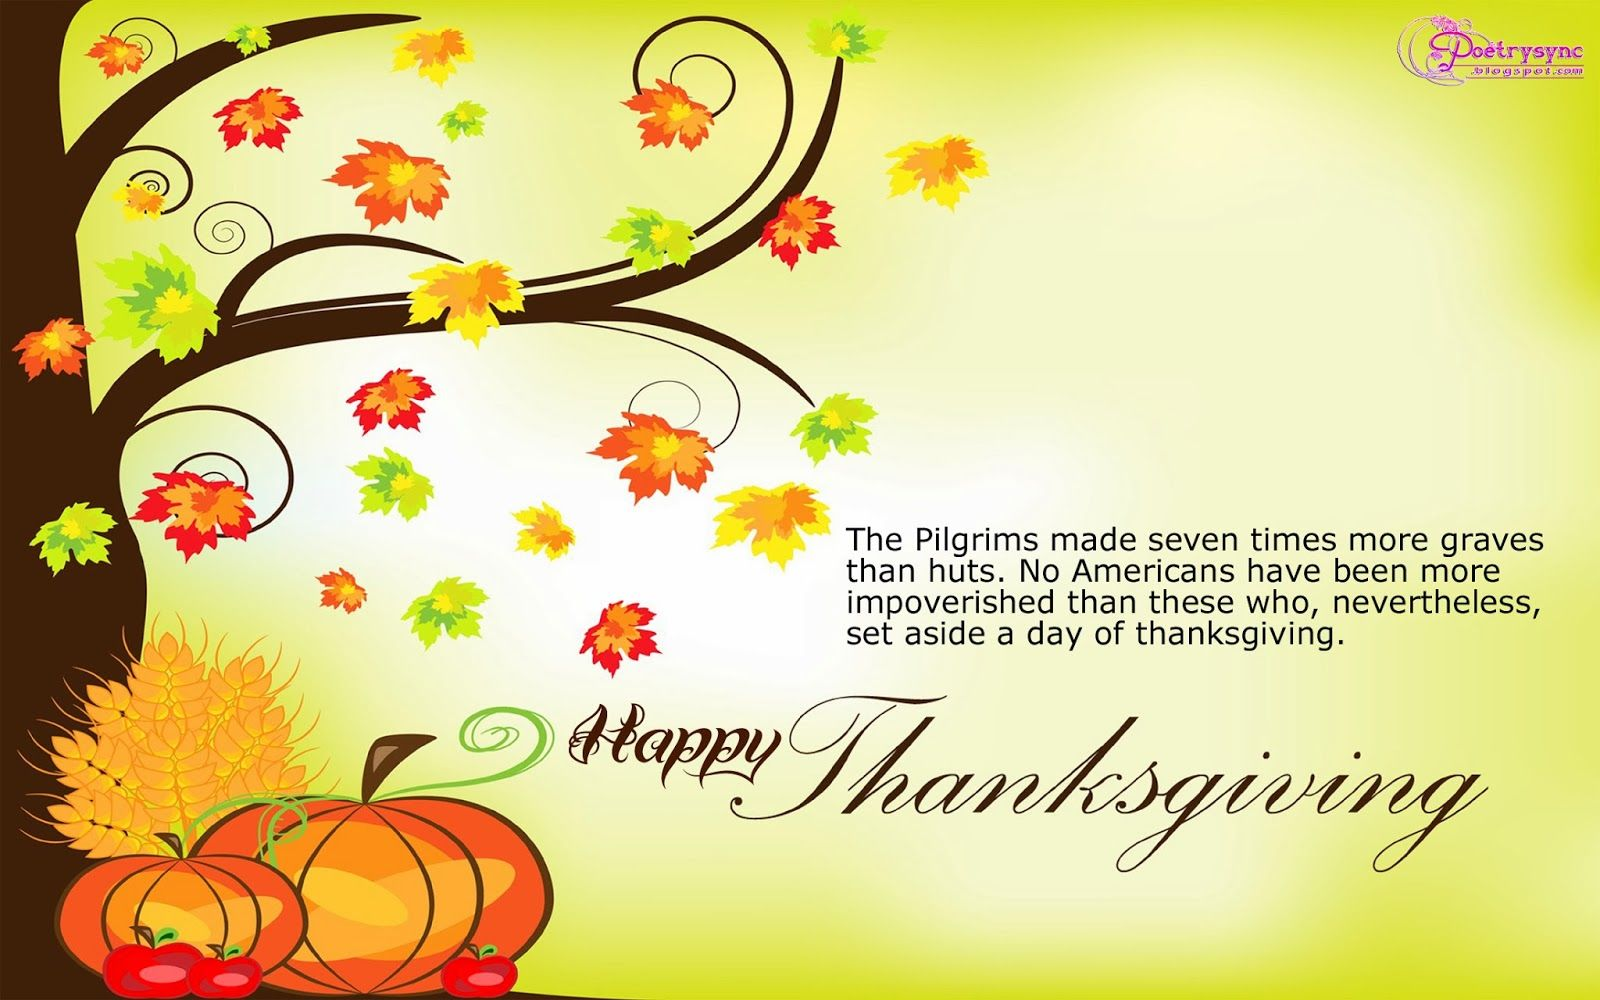 Happy thanksgiving wishes 2014 thanksgiving greetings messages happy thanksgiving wishes 2014 thanksgiving greetings messages sayings quotes happy thanksgiving 2016 pinterest happy thanksgiving and thanksgiving kristyandbryce Choice Image